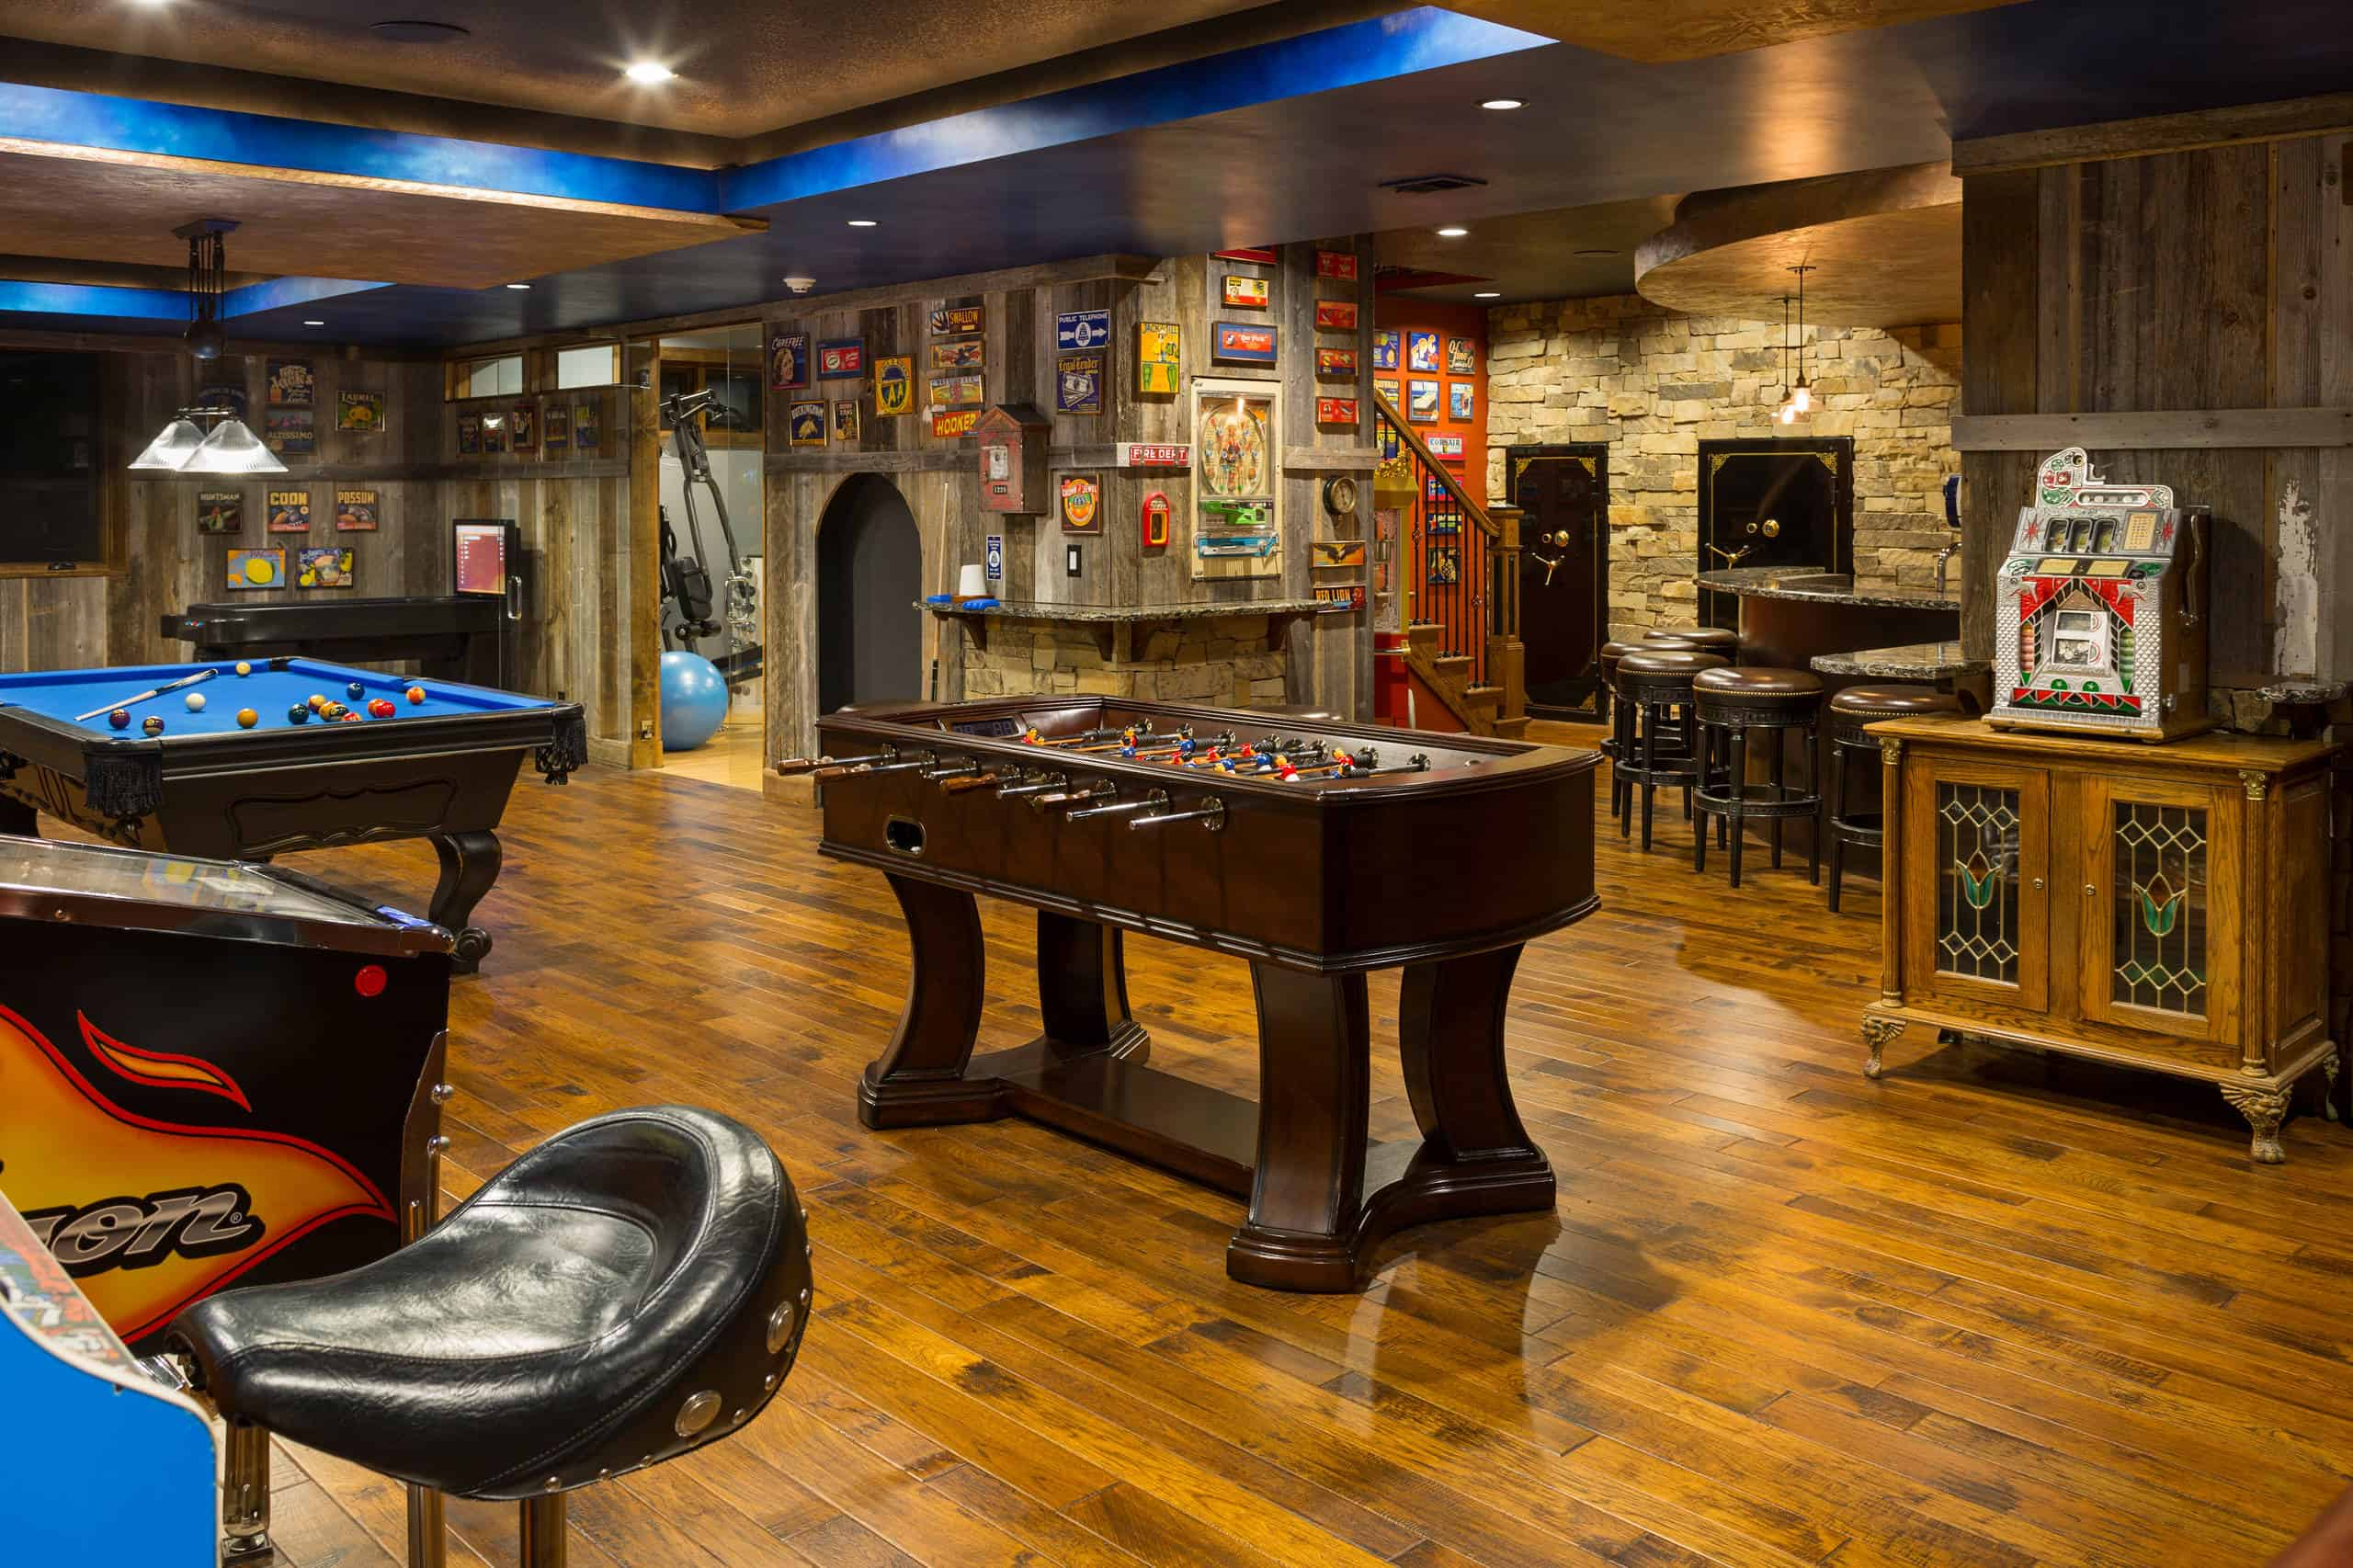 Add a Game Room to your Basement